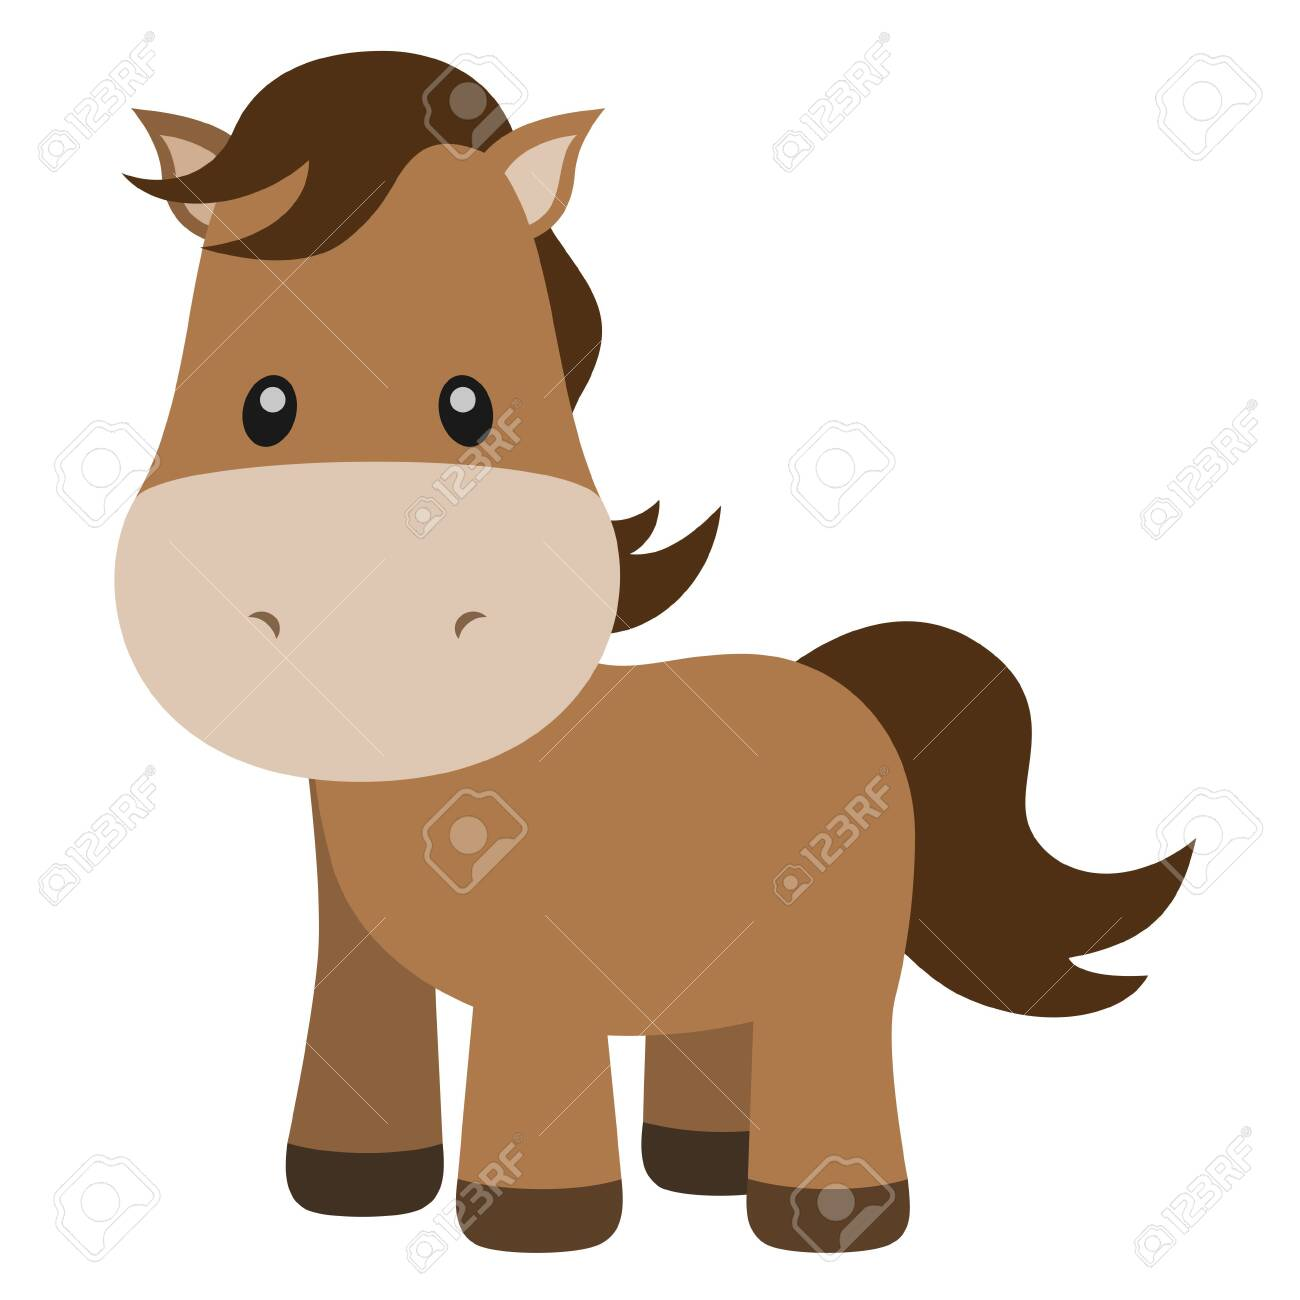 Cute Horse Vector Illustration On White Royalty Free Cliparts Vectors And Stock Illustration Image 135712165